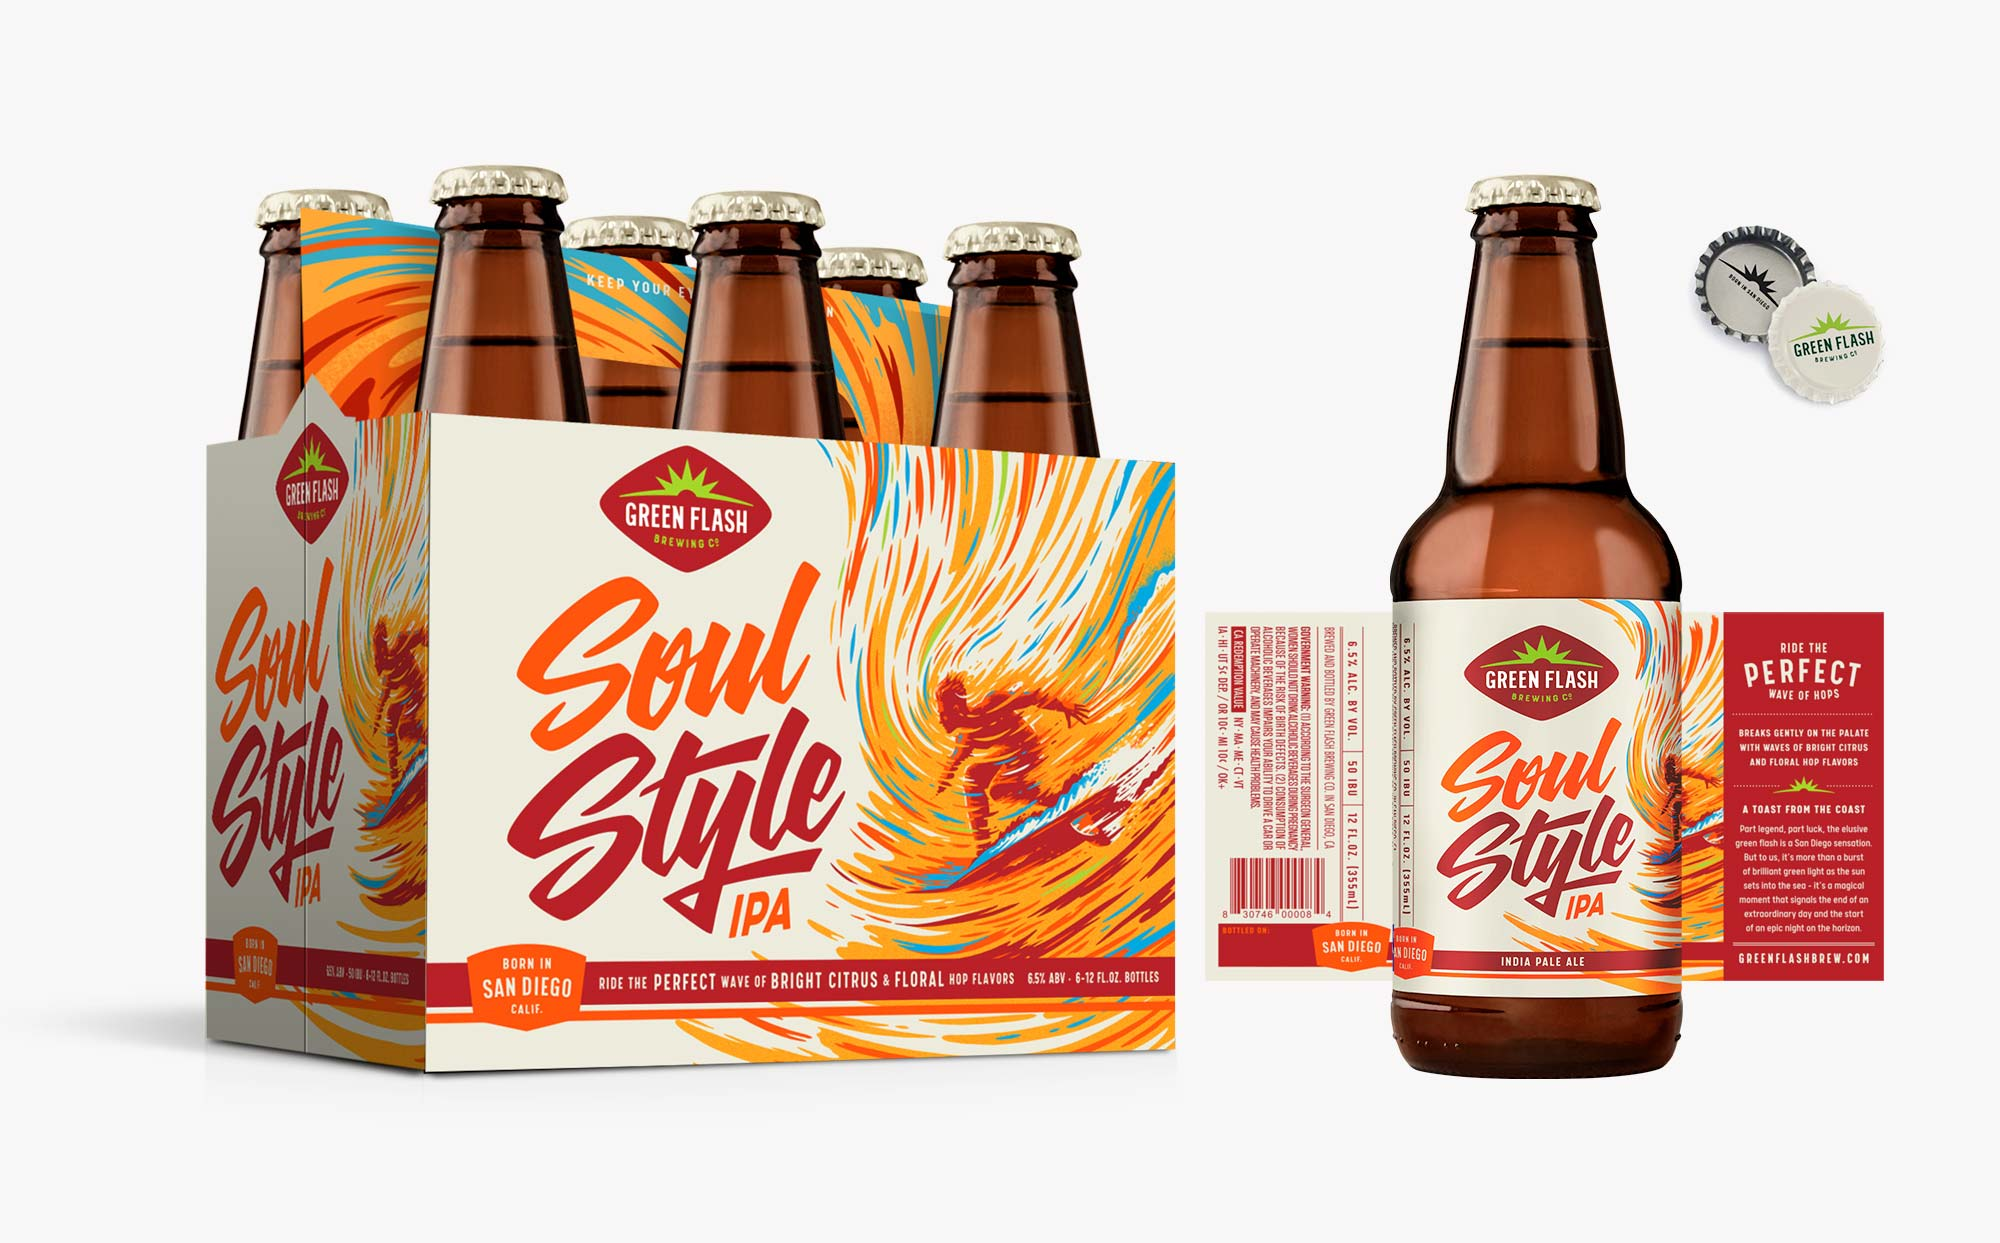 Soul Style IPA 6-pack, bottle label, can design, can box.